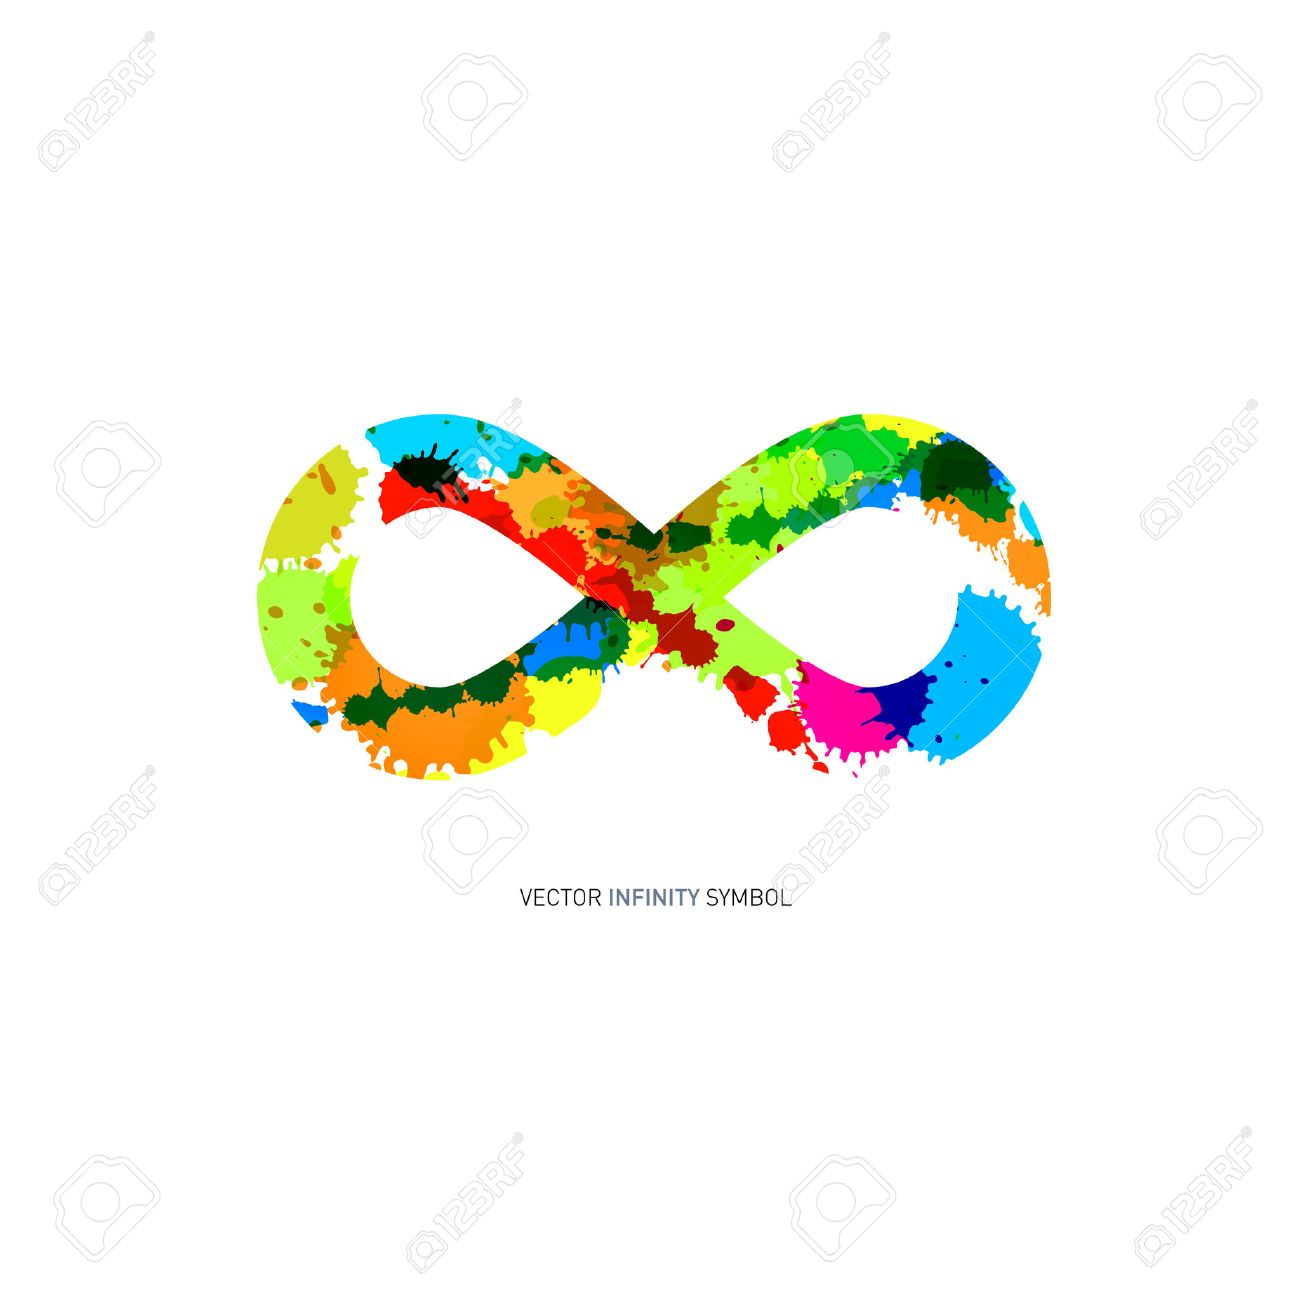 41026 infinity symbol cliparts stock vector and royalty free colorful abstract splash infinity symbol on white background buycottarizona